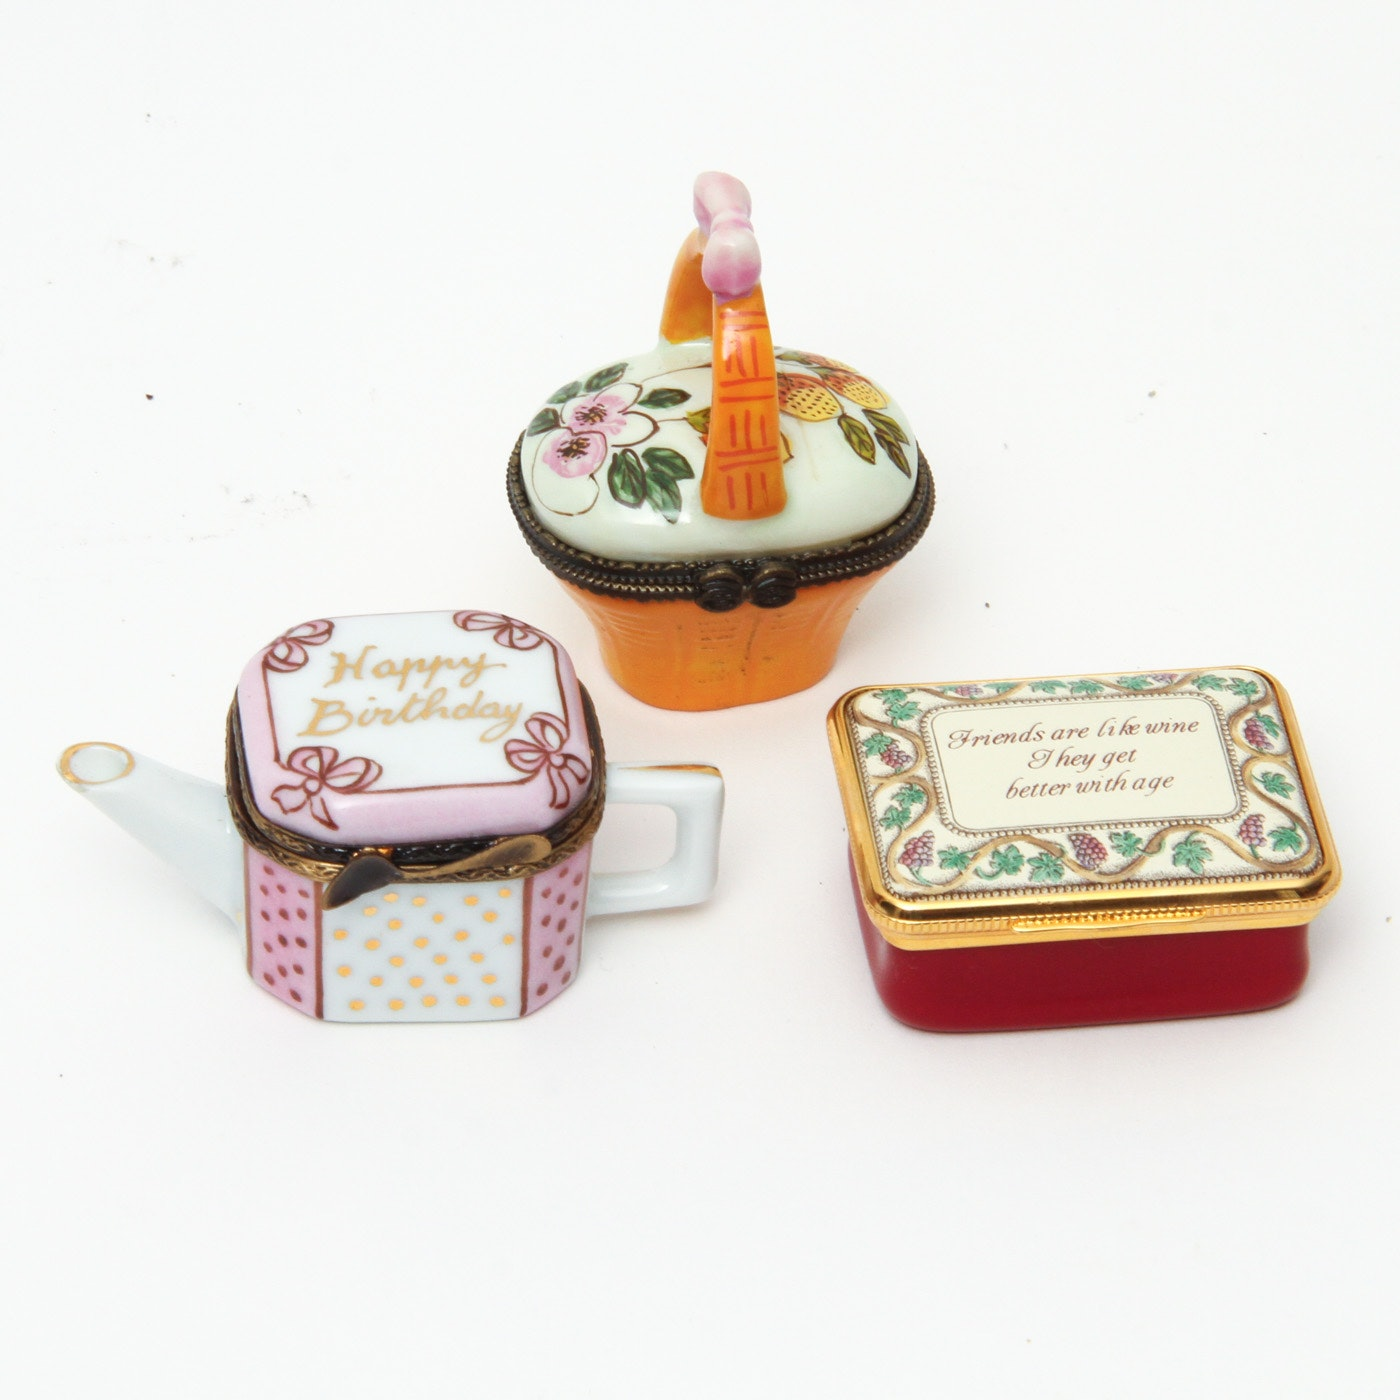 Collection of Porcelain Trinket Boxes Featuring Limoges and Halcyon Days